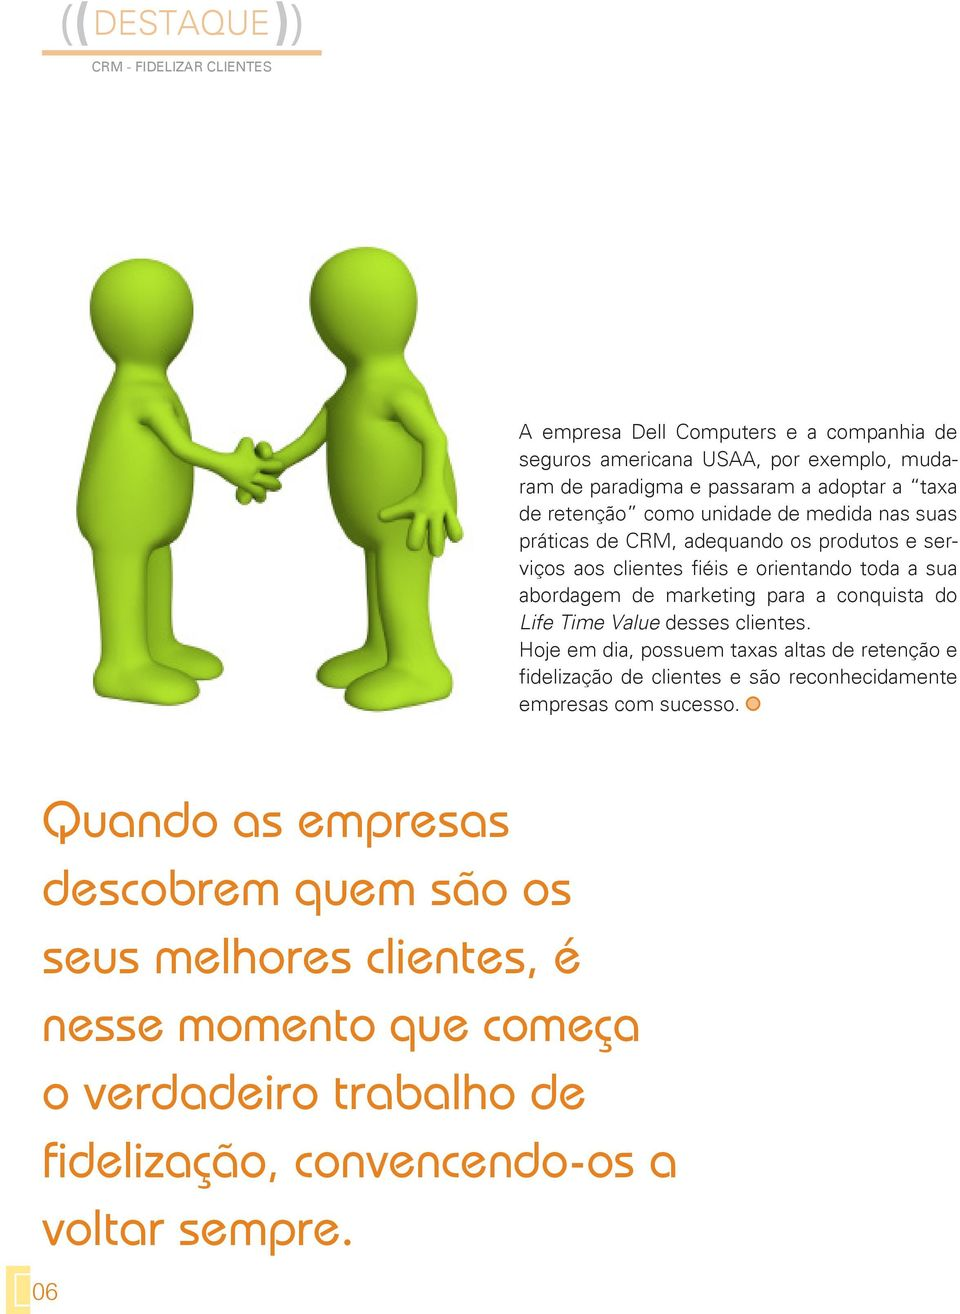 para a conquista do Life Time Value desses clientes.